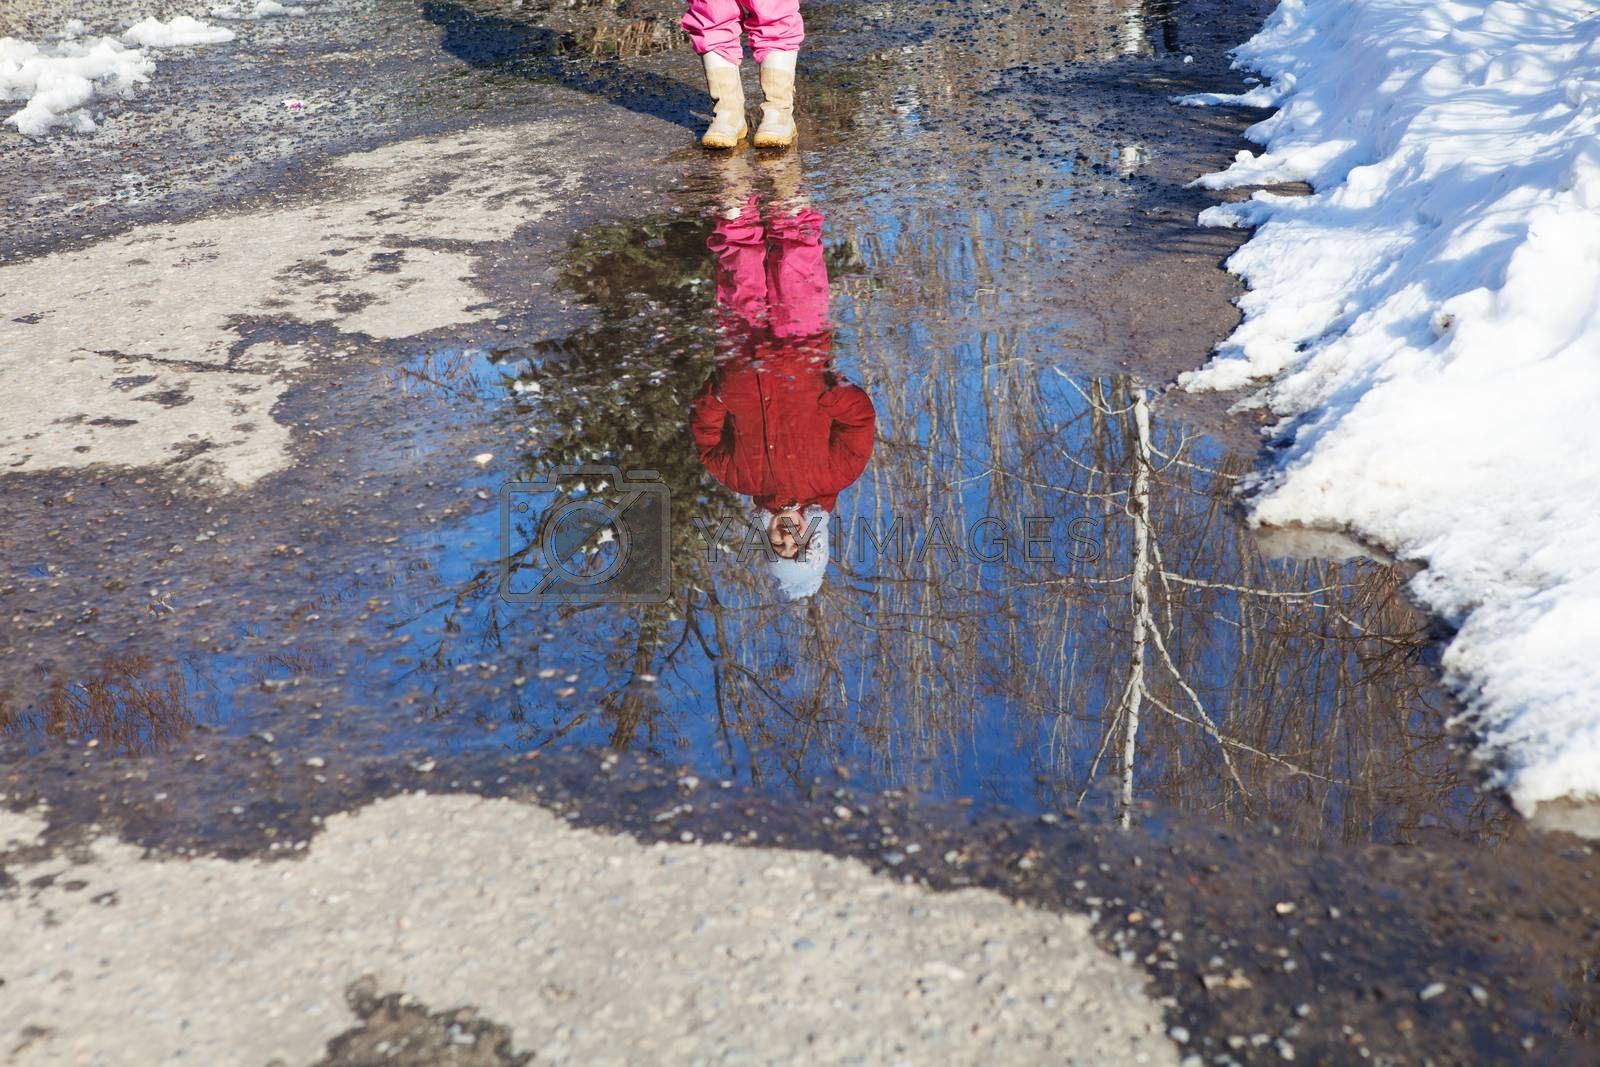 reflection of small girl in spring puddle